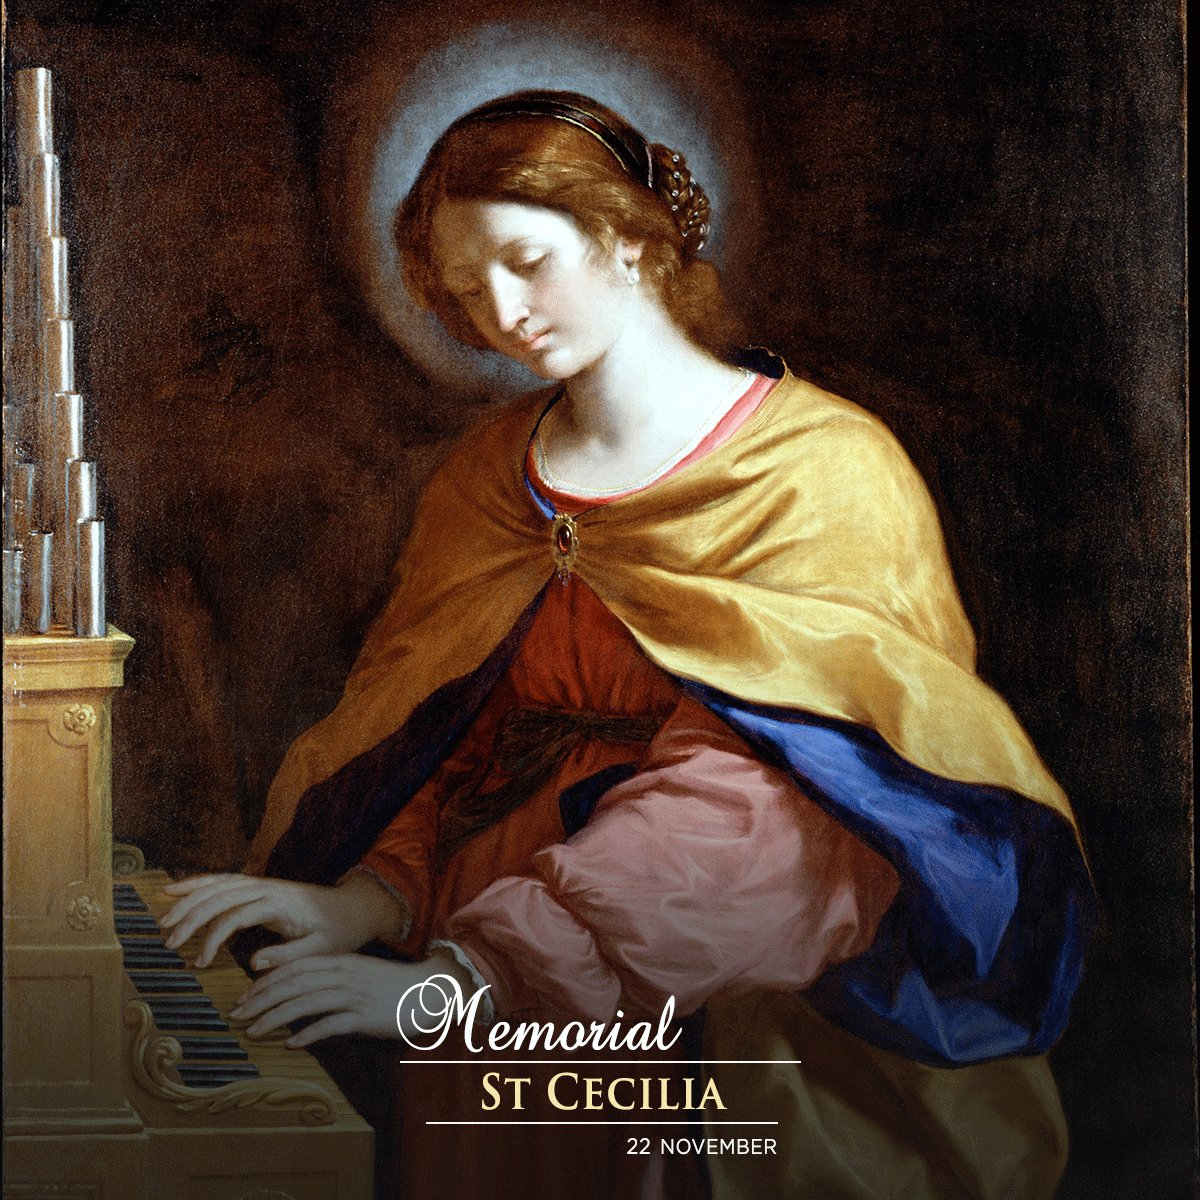 A roman martyr of the second or third century, Cecilia is thought to have converted her husband and his brother to Christianity, and they were martyred before her. She is the patron saint of #musicians #saint #memorial<br>http://pic.twitter.com/SBqJNIPgiK